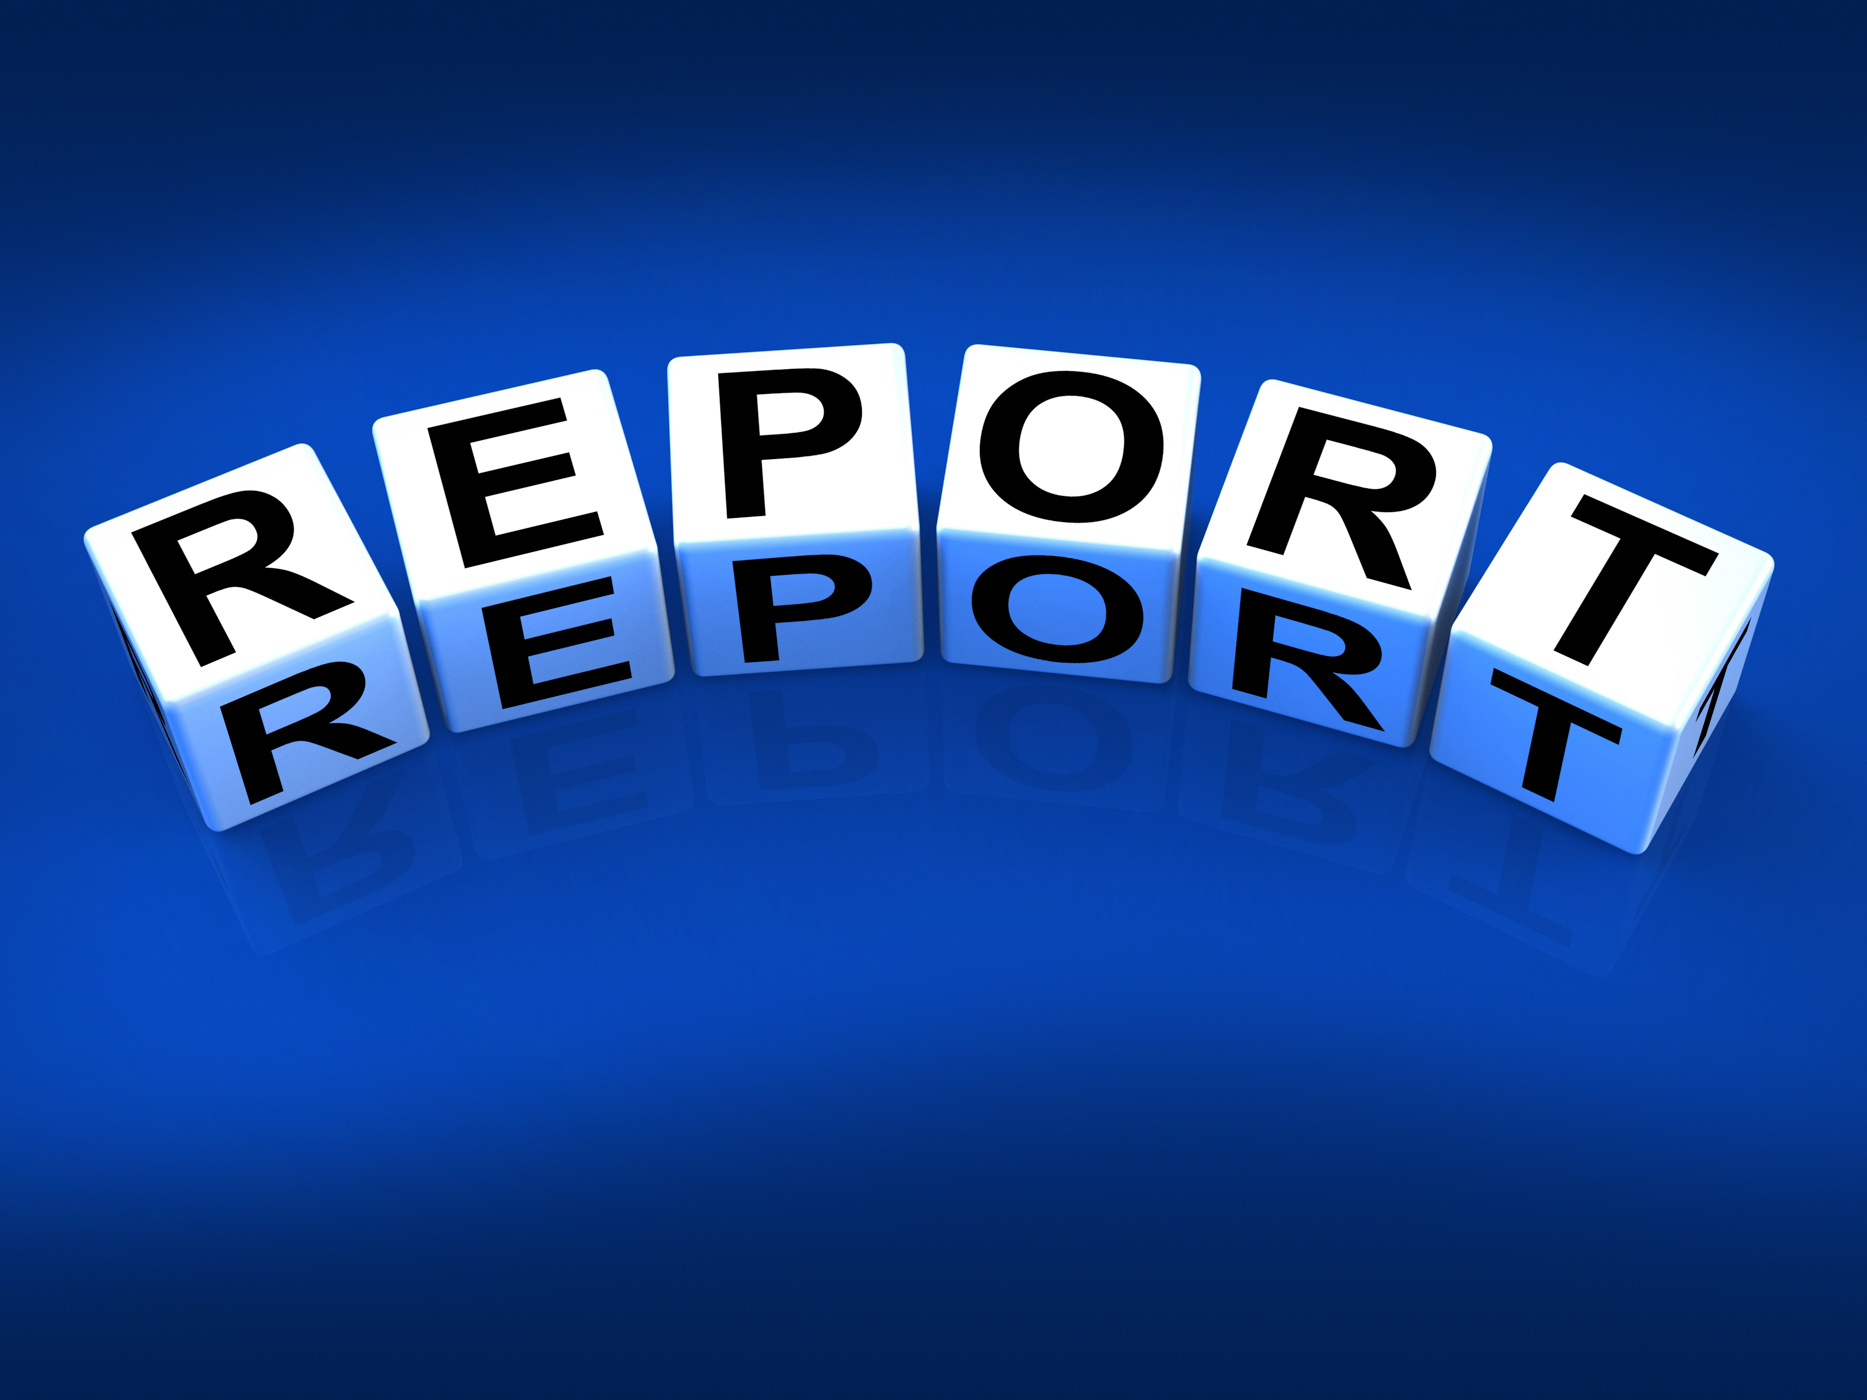 Report blocks represent reported information or articles photo